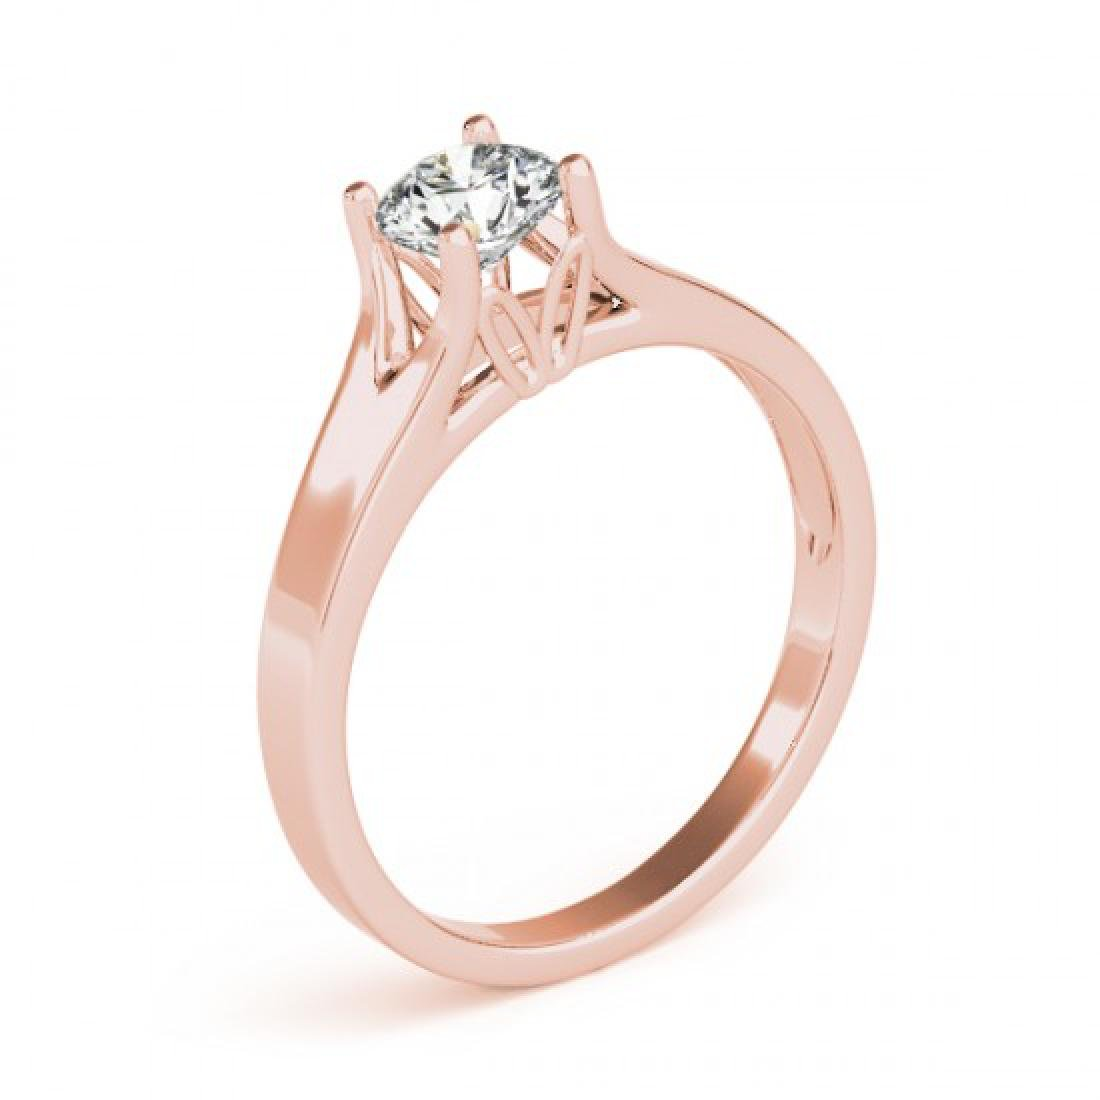 1.5 CTW Certified VS/SI Diamond Solitaire Ring 14K Rose - 3